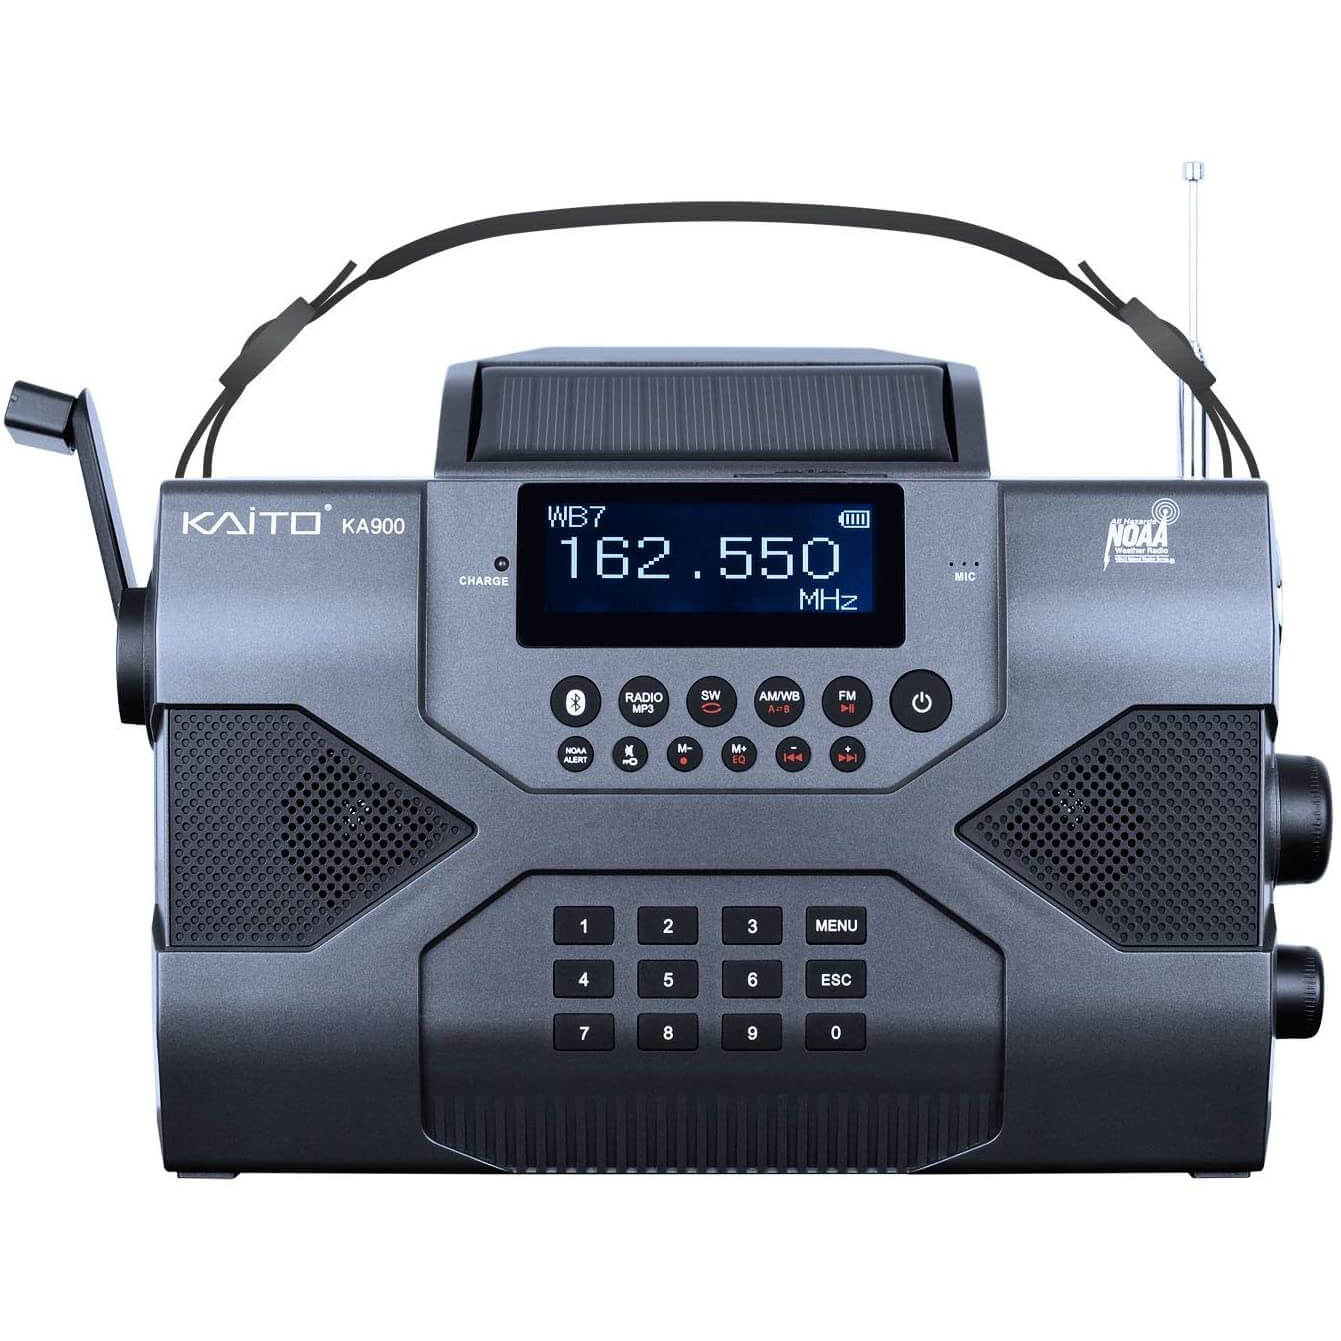 Kaito Emergency Radio Voyager Max KA900 Solar Powered Portable Radio